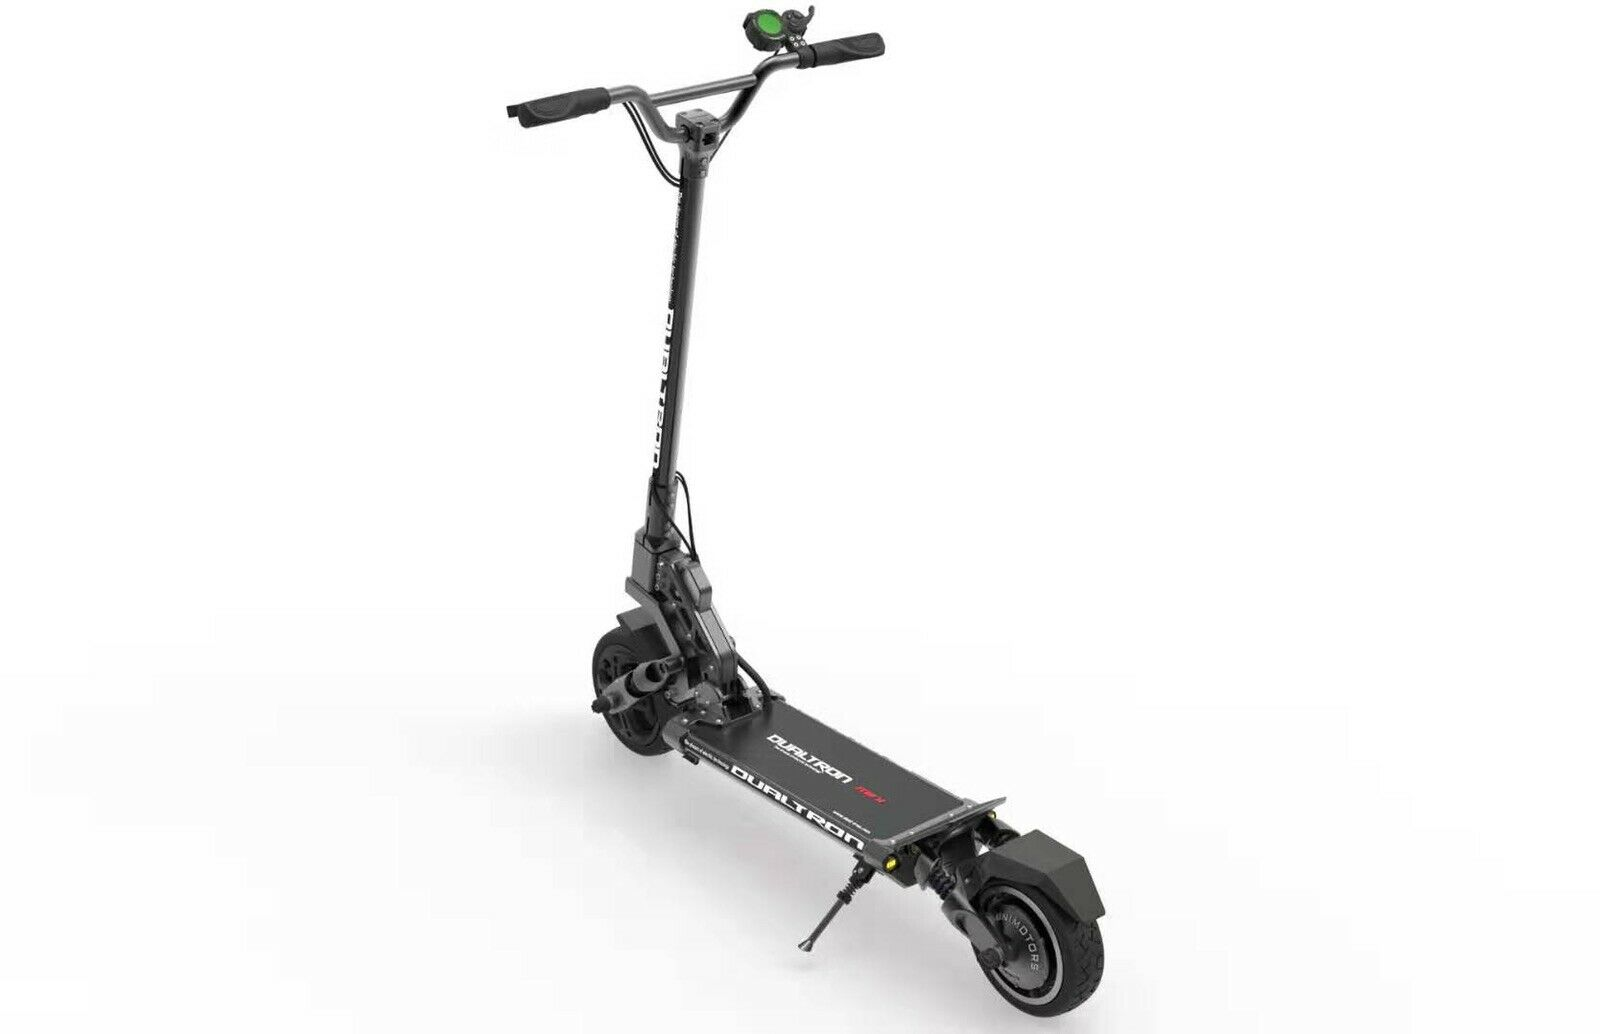 Dualtron Mini Electric Scooter Rear View Image